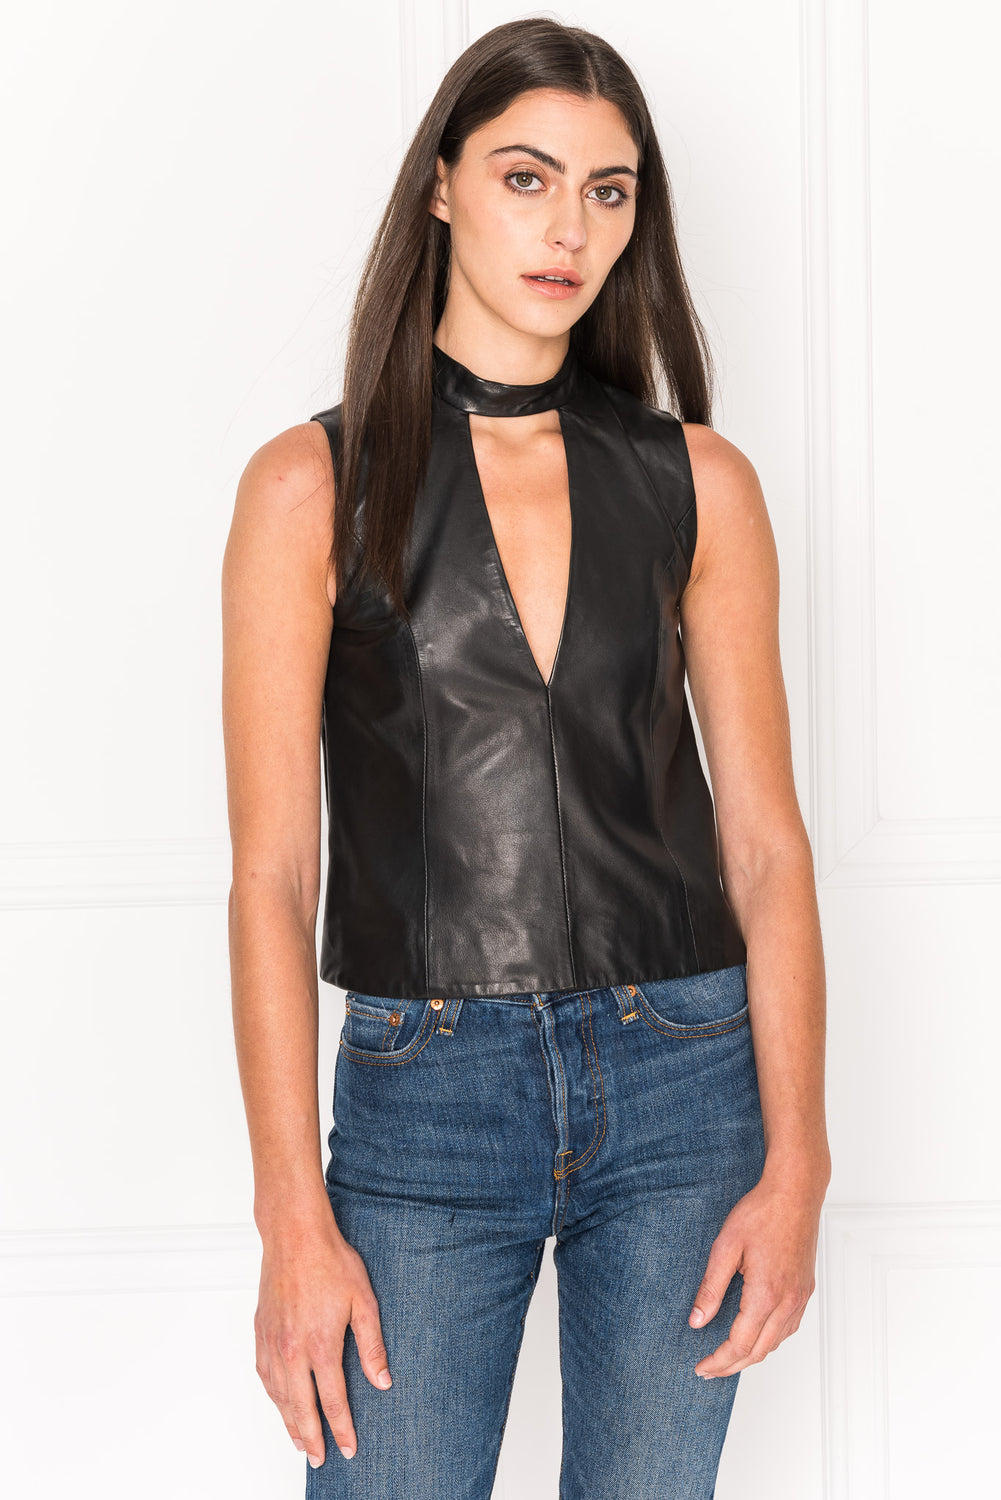 NASHA Chocker V-Neck Sleeveless Leather Top